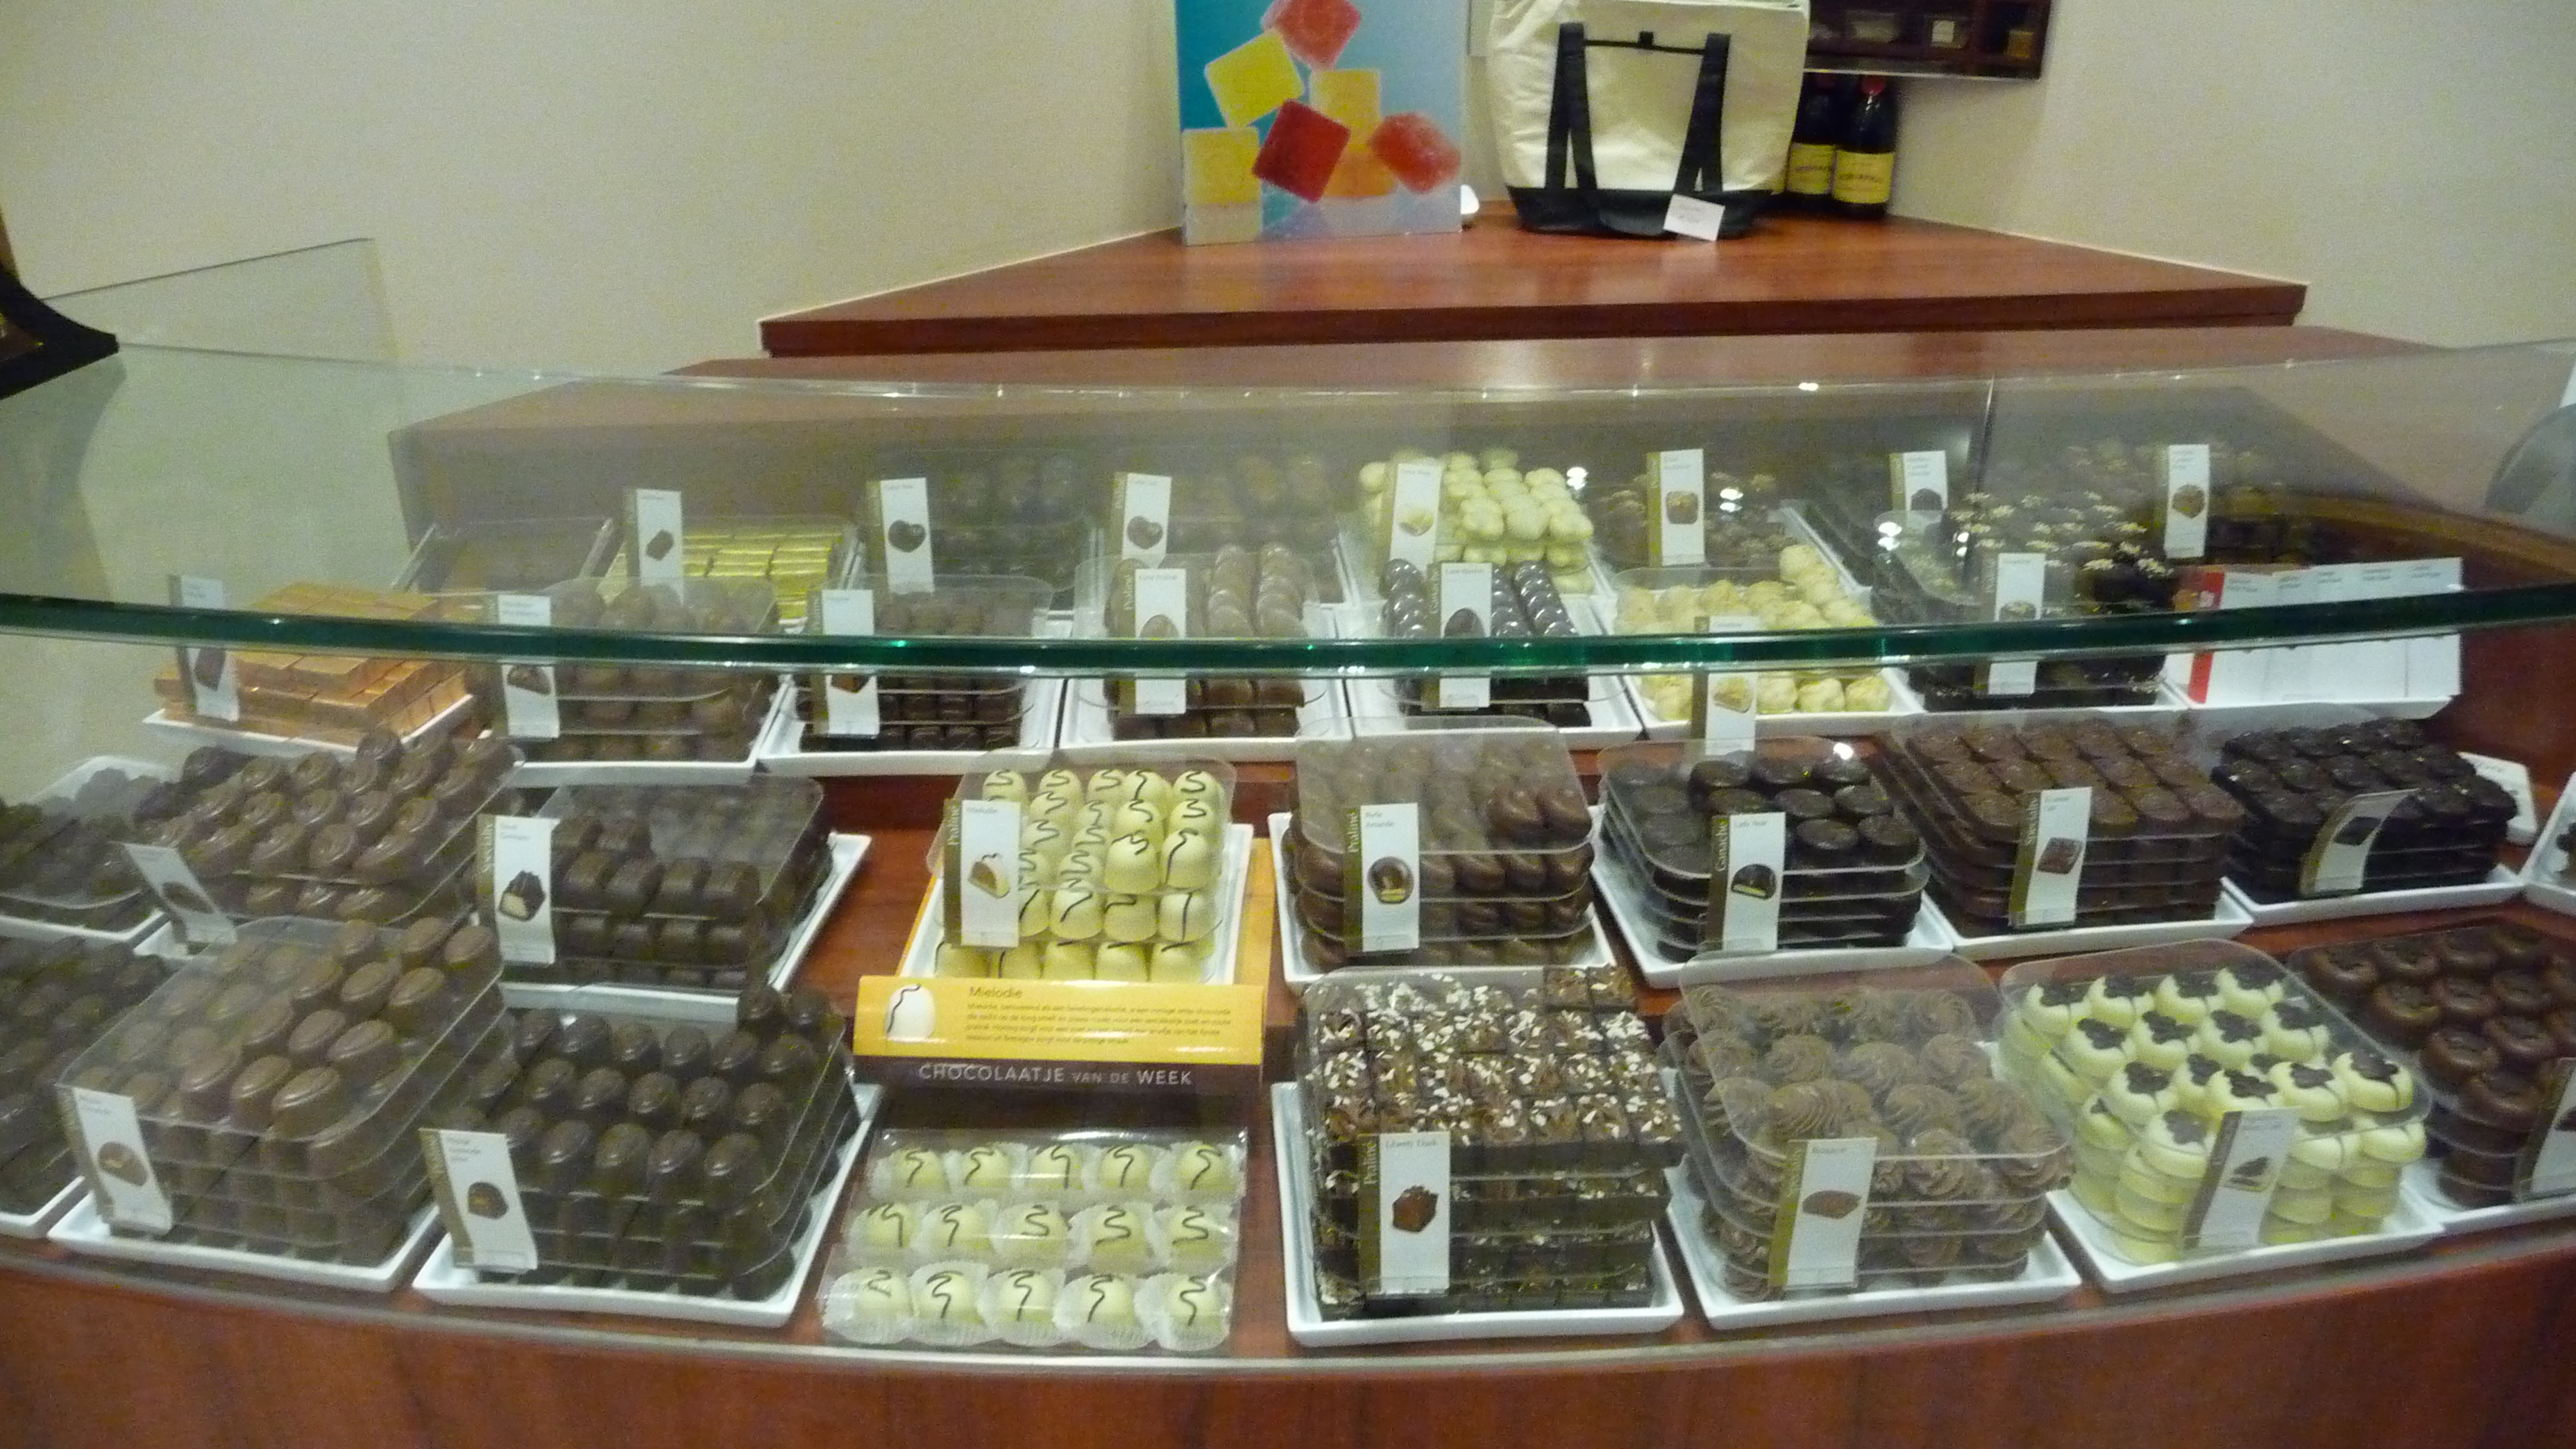 Mechelen chocolates